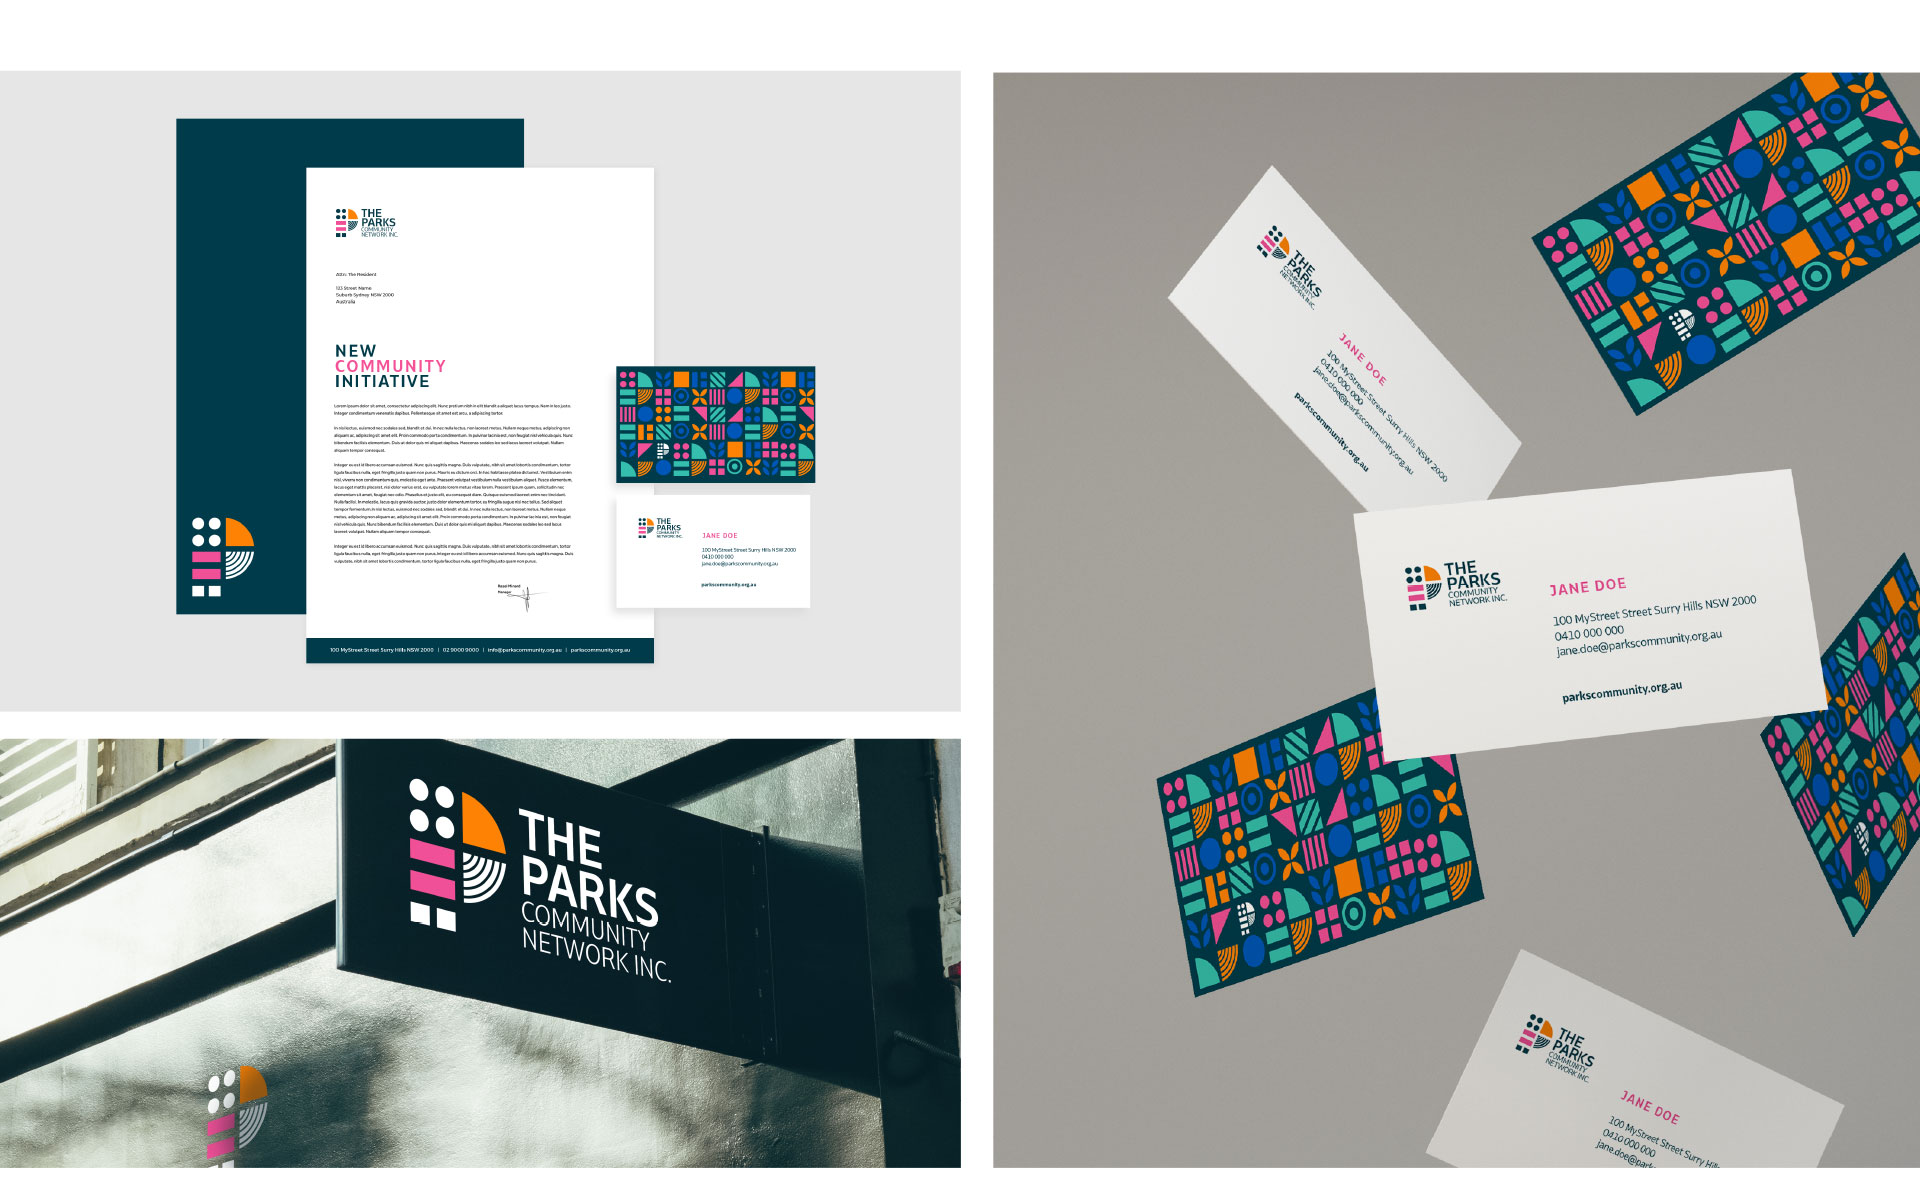 The Parks Community Network logo, branding & marketing designed by Amy at Yellow Sunday